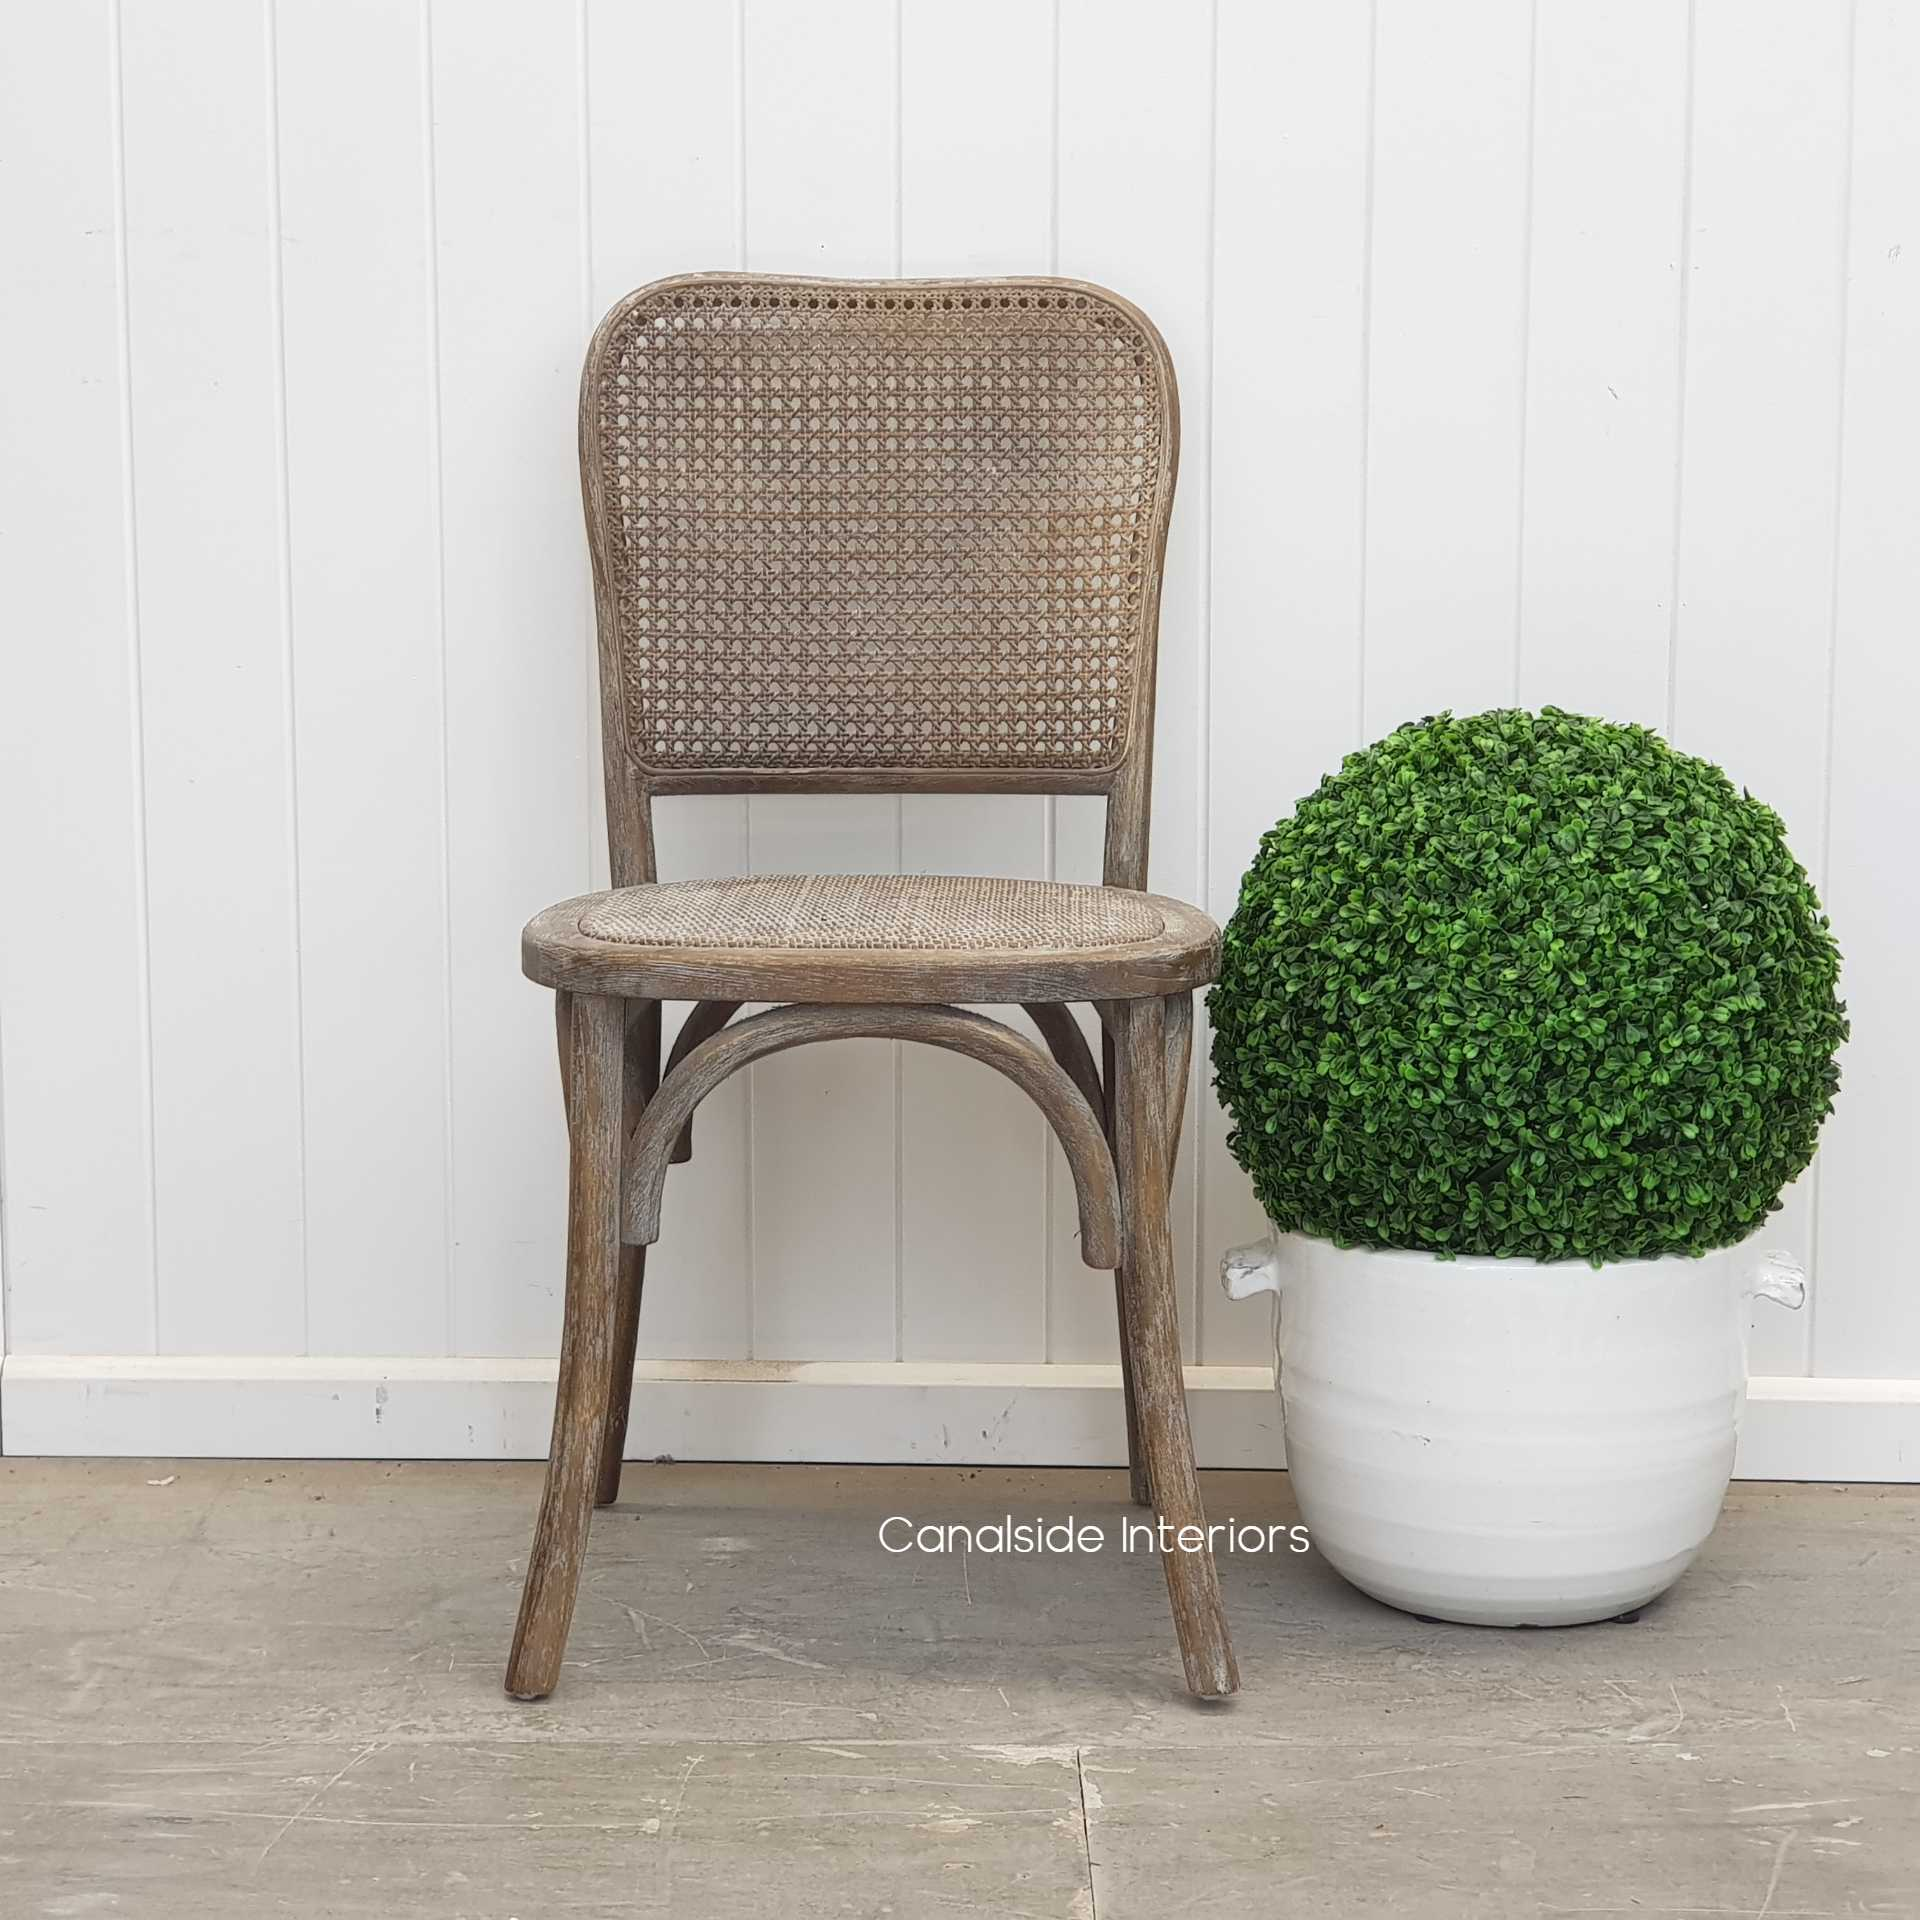 Saxon Bentwood Chair Weathered Oak  Dining, CHAIRS, CAFE FURNITURE, HAMPTONS Style, PLANTATION Style, CHAIRS Dining, CAFE FURNITURE Stools & Chairs, PLANTATION STYLE